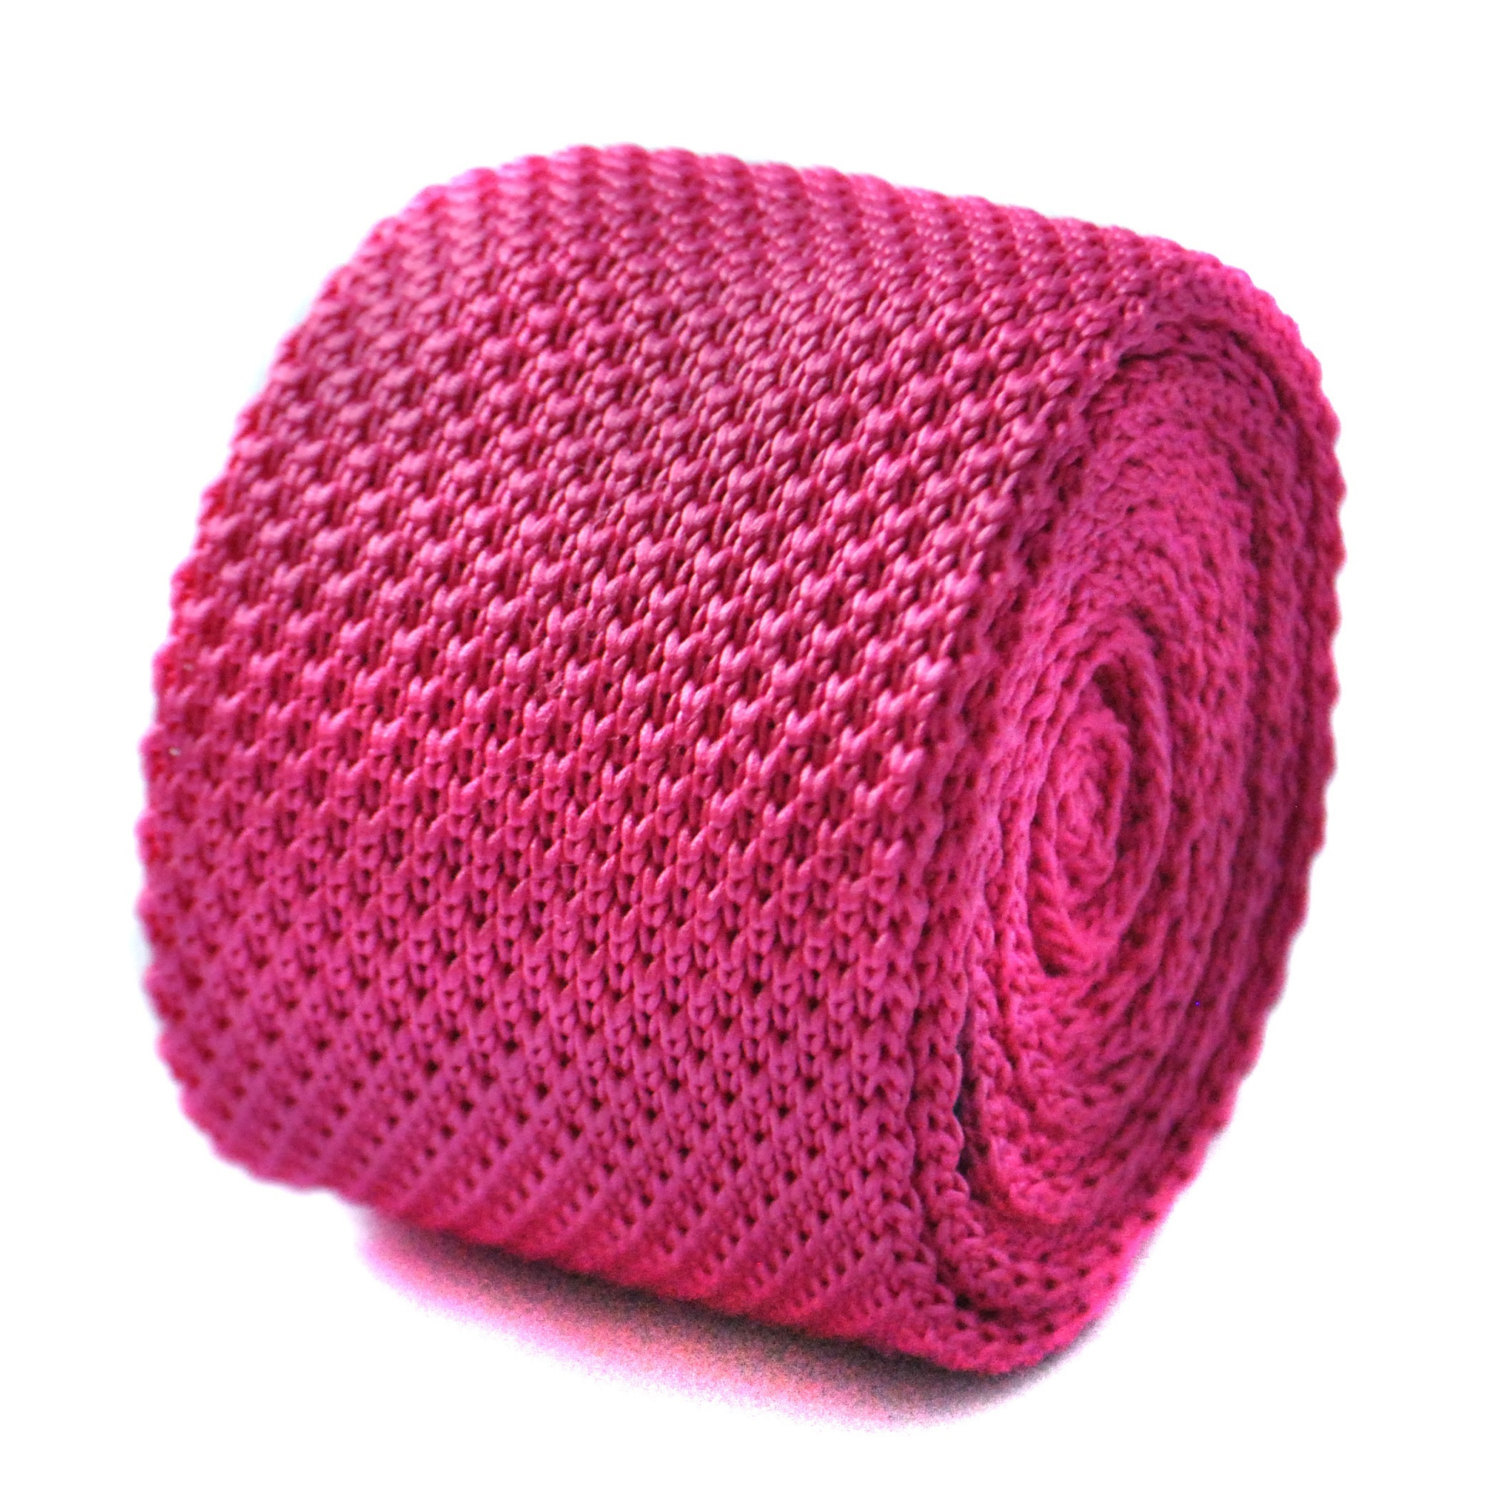 Plain knitted bright fuchsia pink skinny tie with pointed end by Frederick Thoma